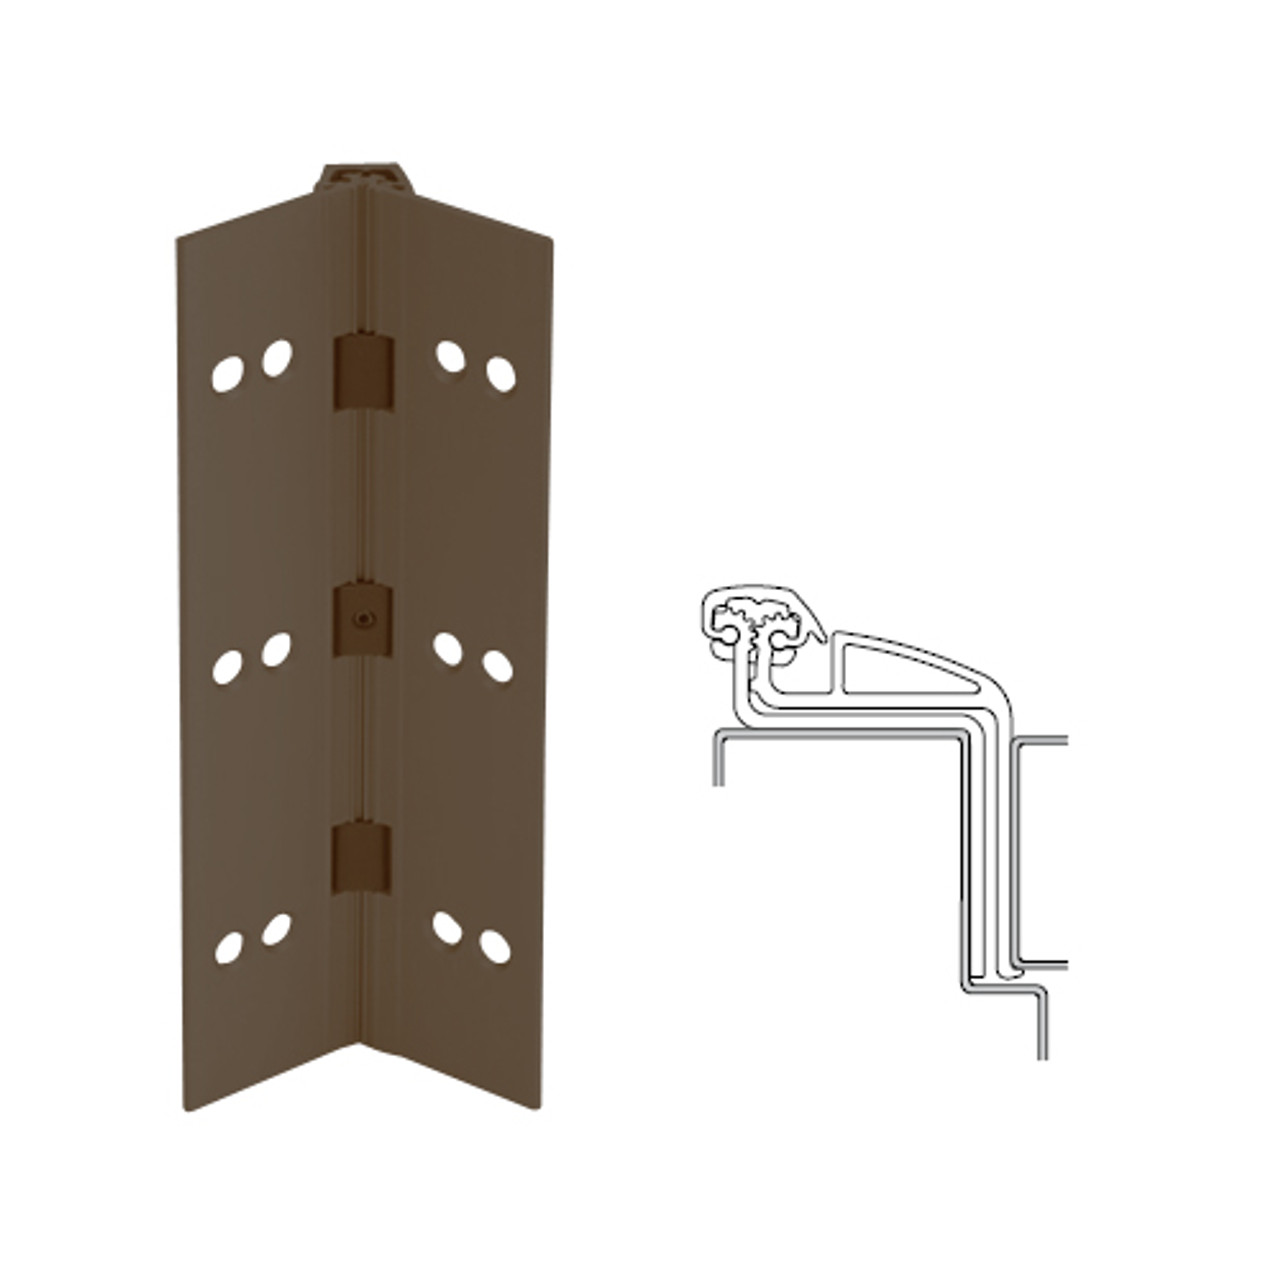 041XY-313AN-83 IVES Full Mortise Continuous Geared Hinges in Dark Bronze Anodized